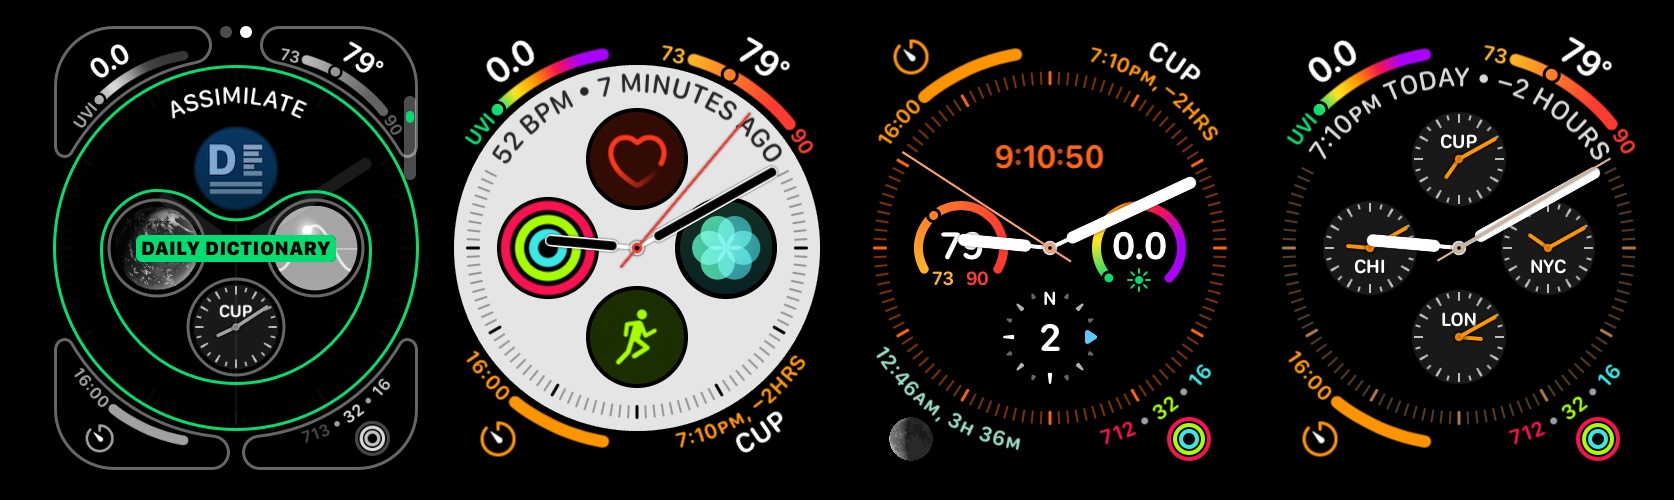 ebea8d1c9c Apple Watch Series 4 review - features, design, ECG, more - 9to5Mac